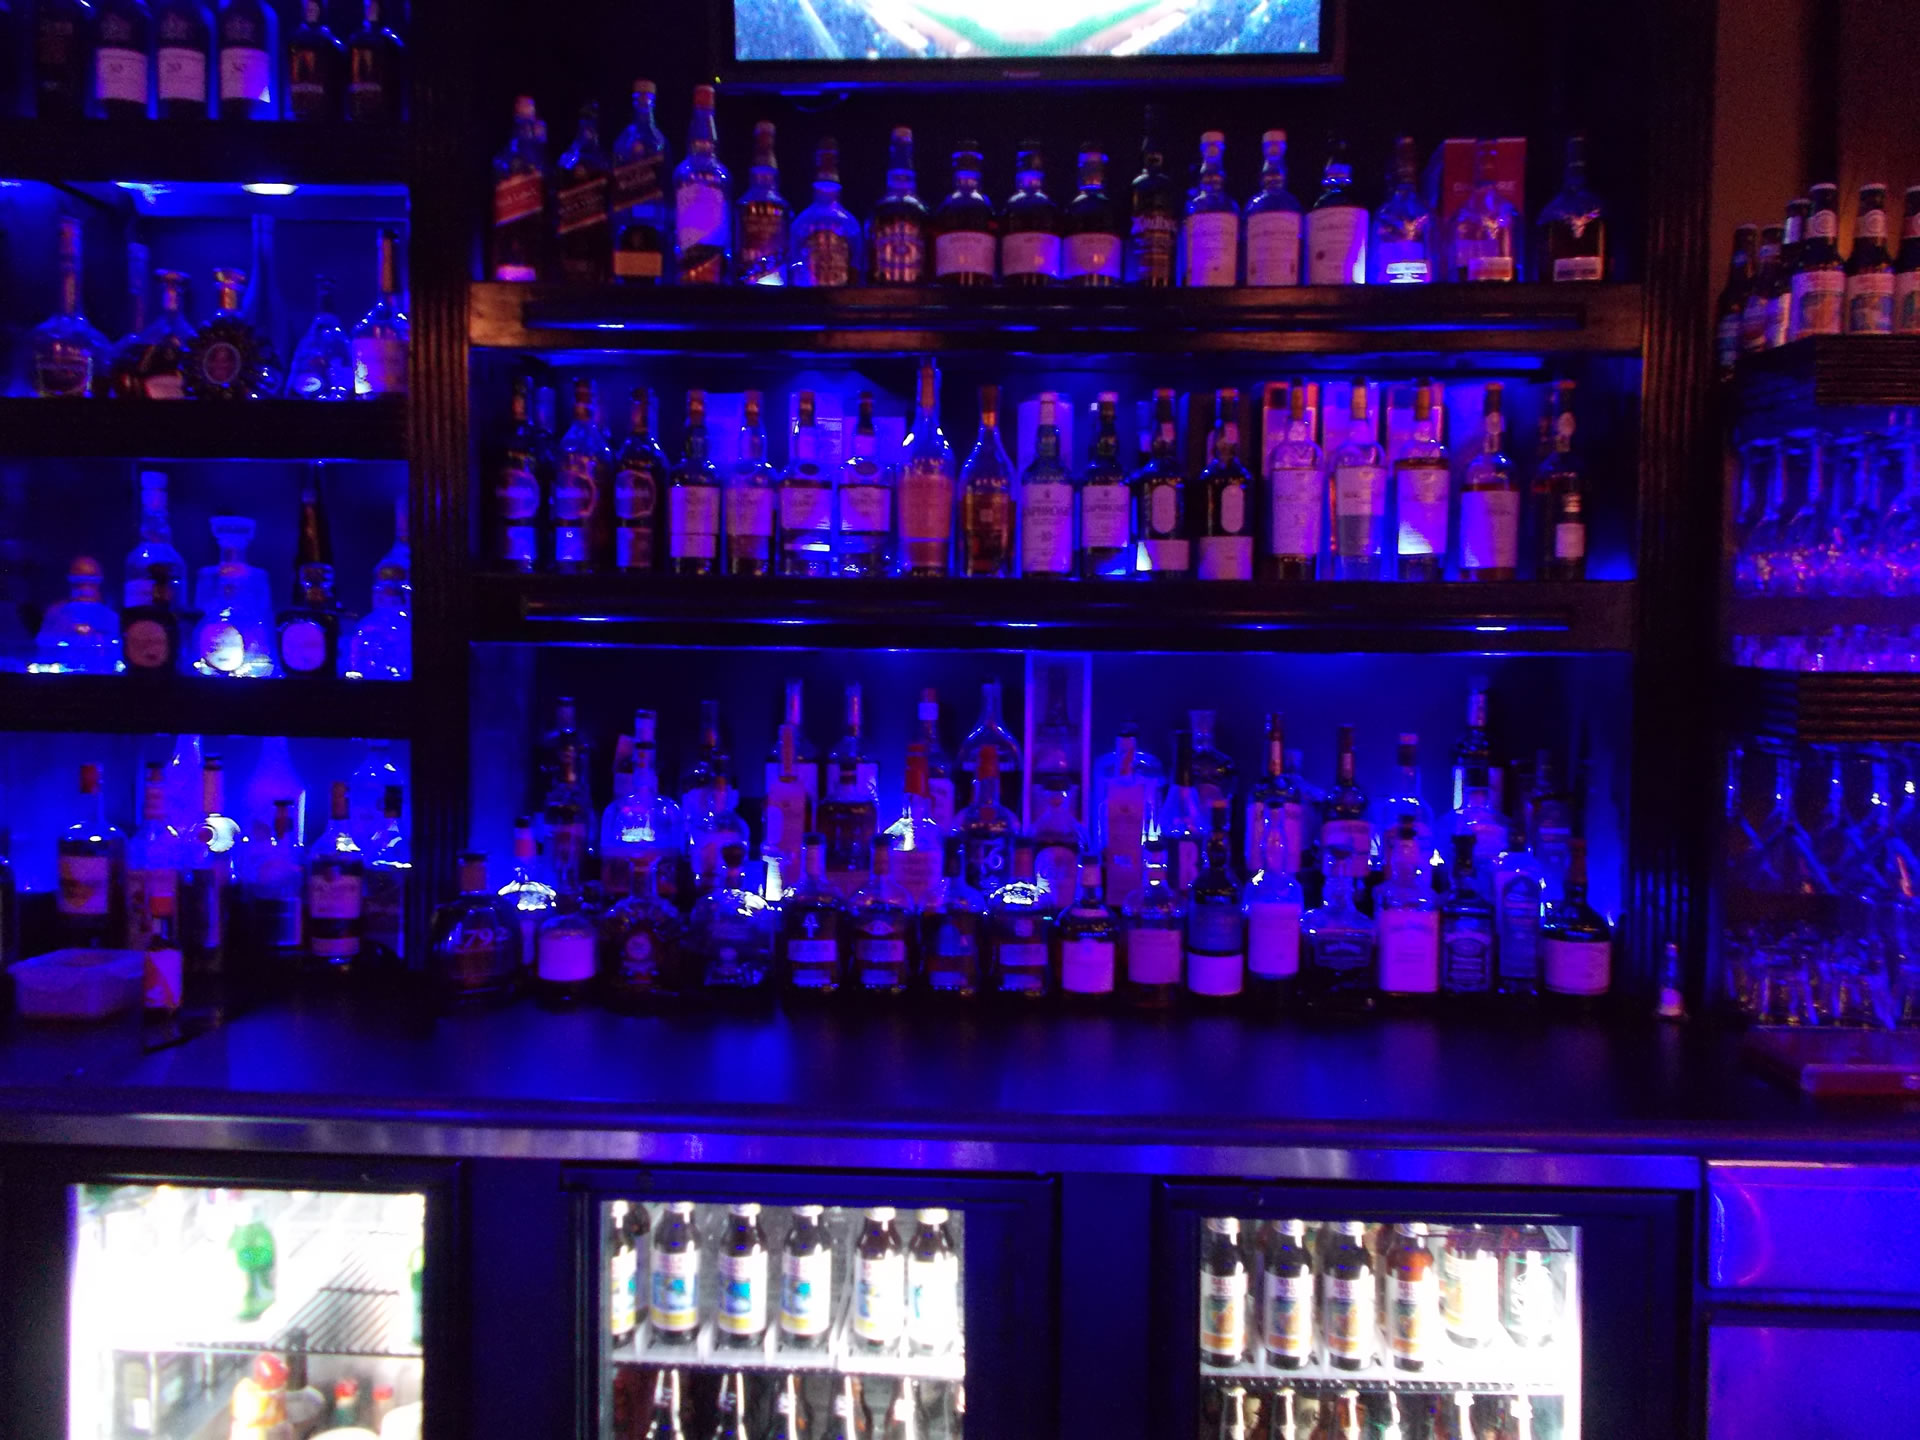 WITH YOUR FAVORITE SPIRITS & LIBATIONS